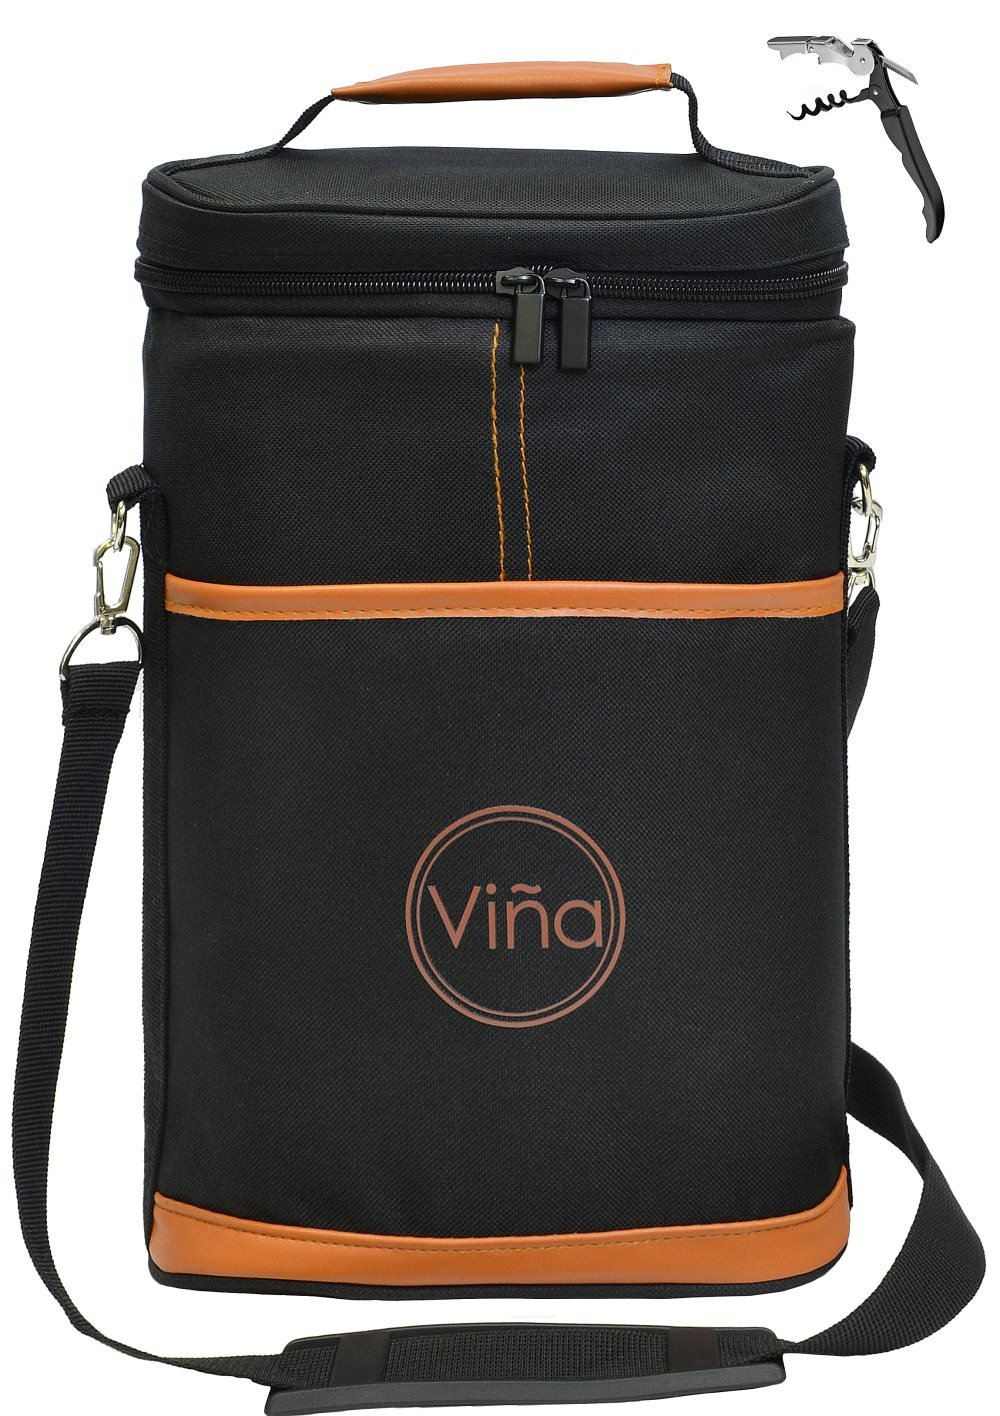 Vina Wine Insulated Tote Bag, 2 Bottle Wine/Beer Cooler Carrier Case with Shoulder Strap + Free Corkscrew for Picnic and Travel, Great Gift for Wine Lover, Brown